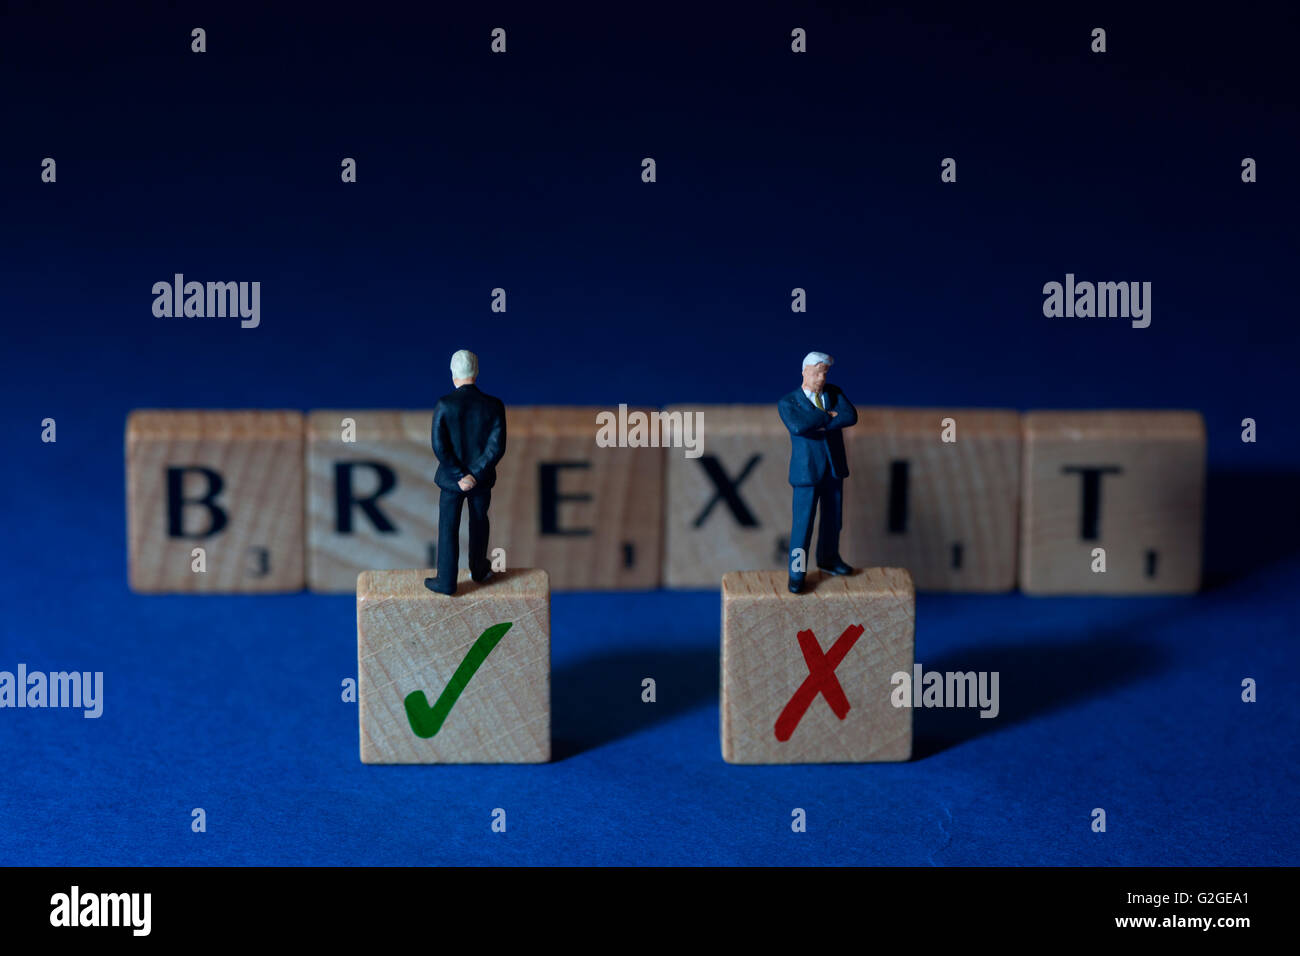 Brexit spelled out with undecided businessman - Stock Image